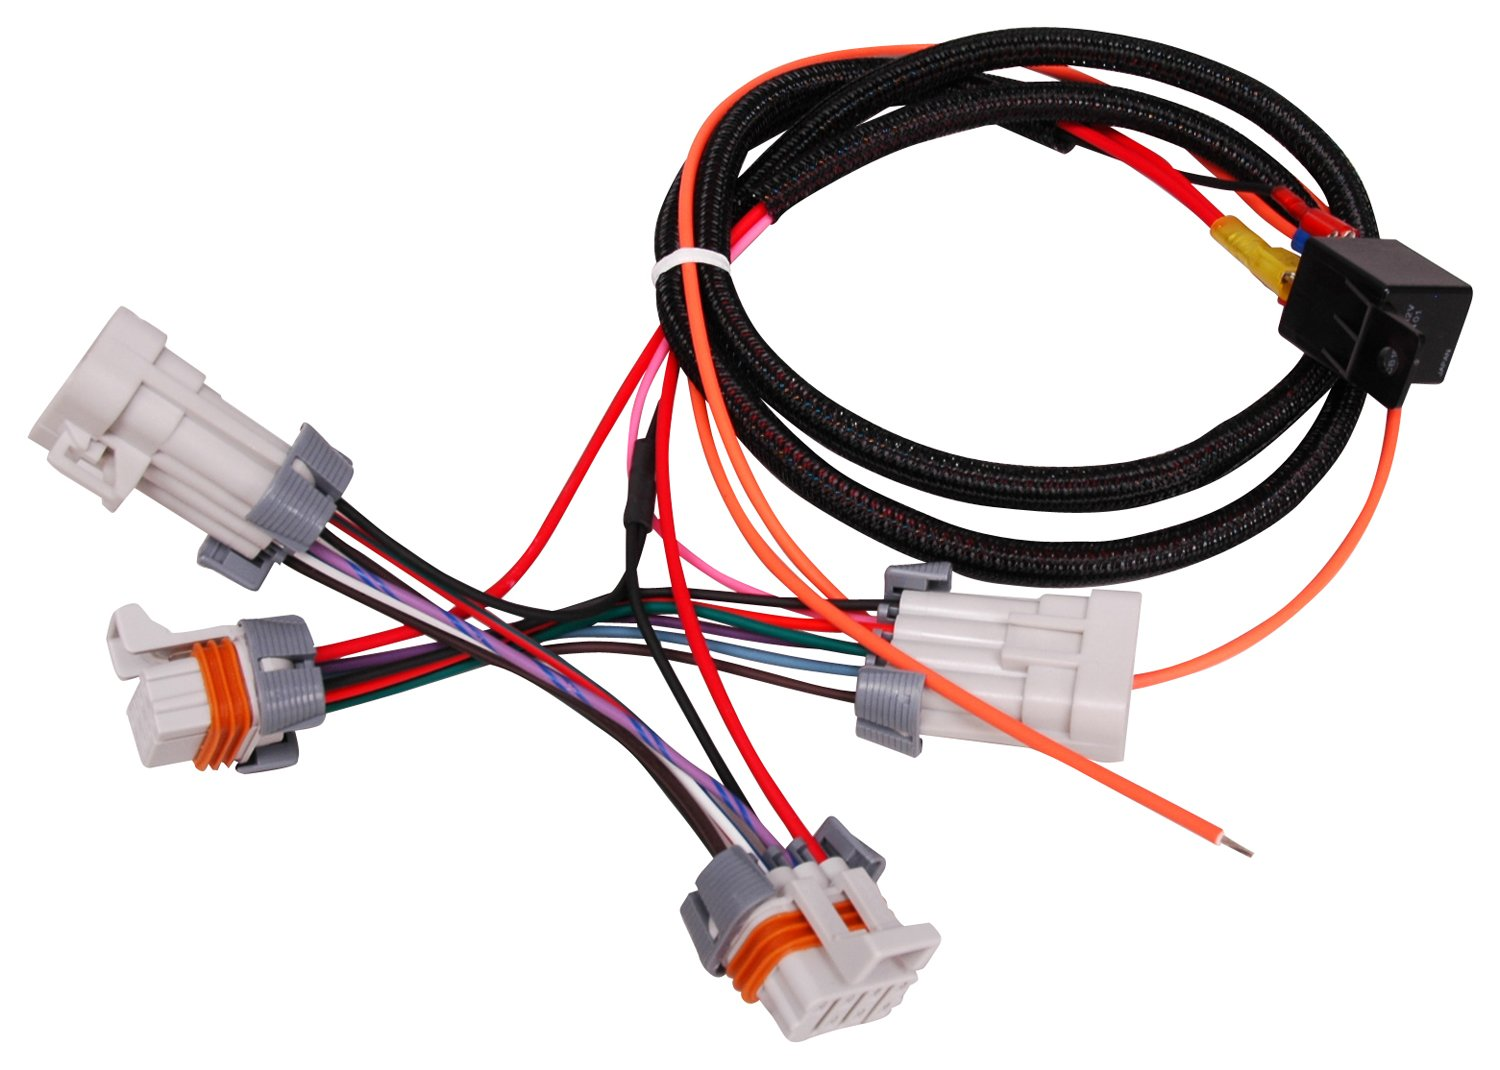 88867_v1 harnesses msd performance products tech support 888 258 3835 Standalone Wiring Harness 5 3 at creativeand.co